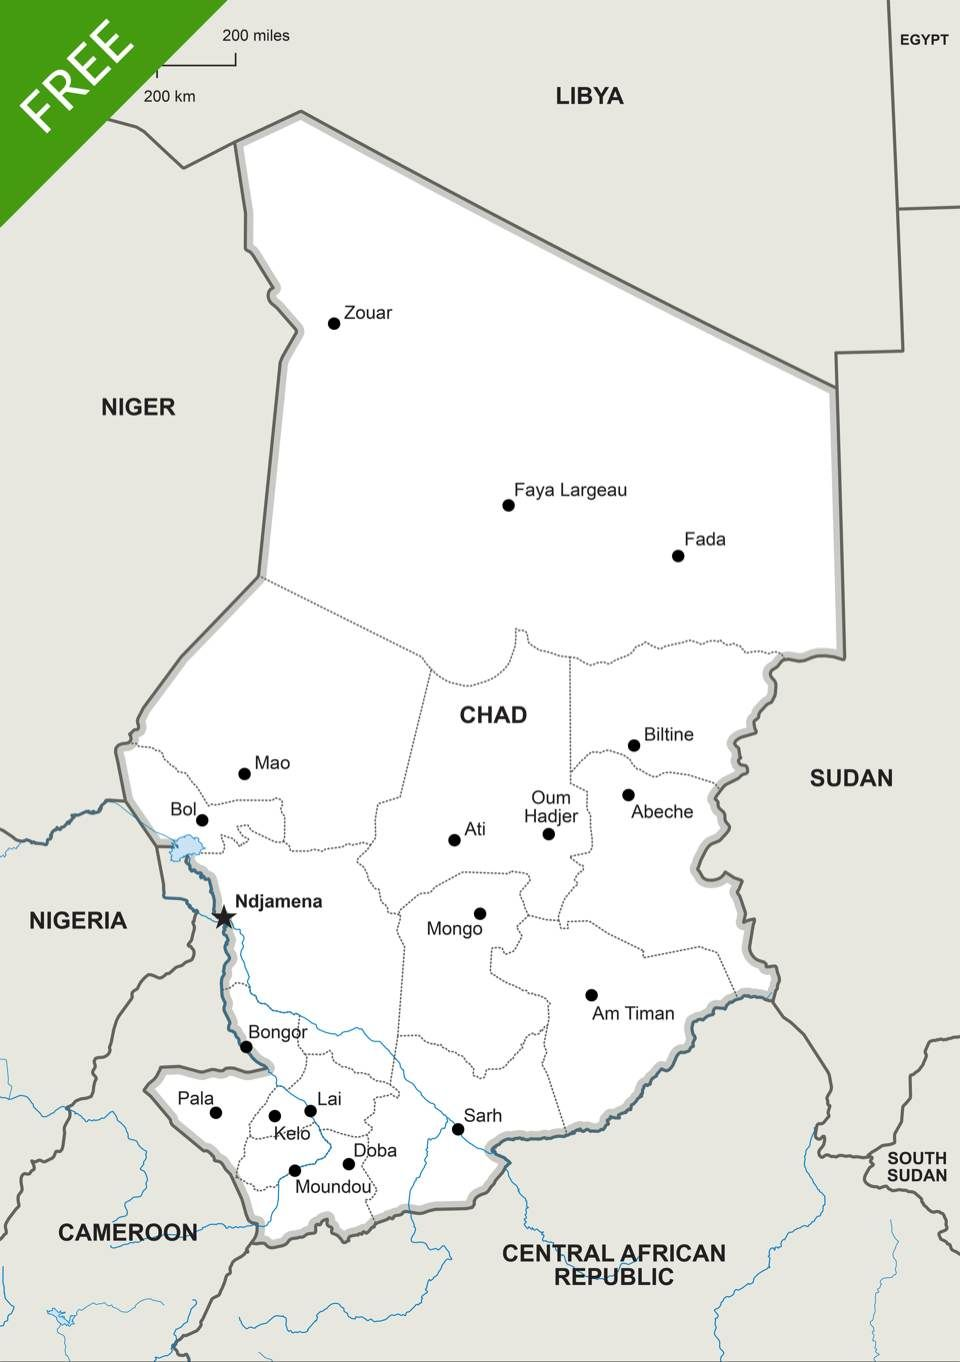 Free Vector Map of Chad Political | Maps of Africa - continent ... on